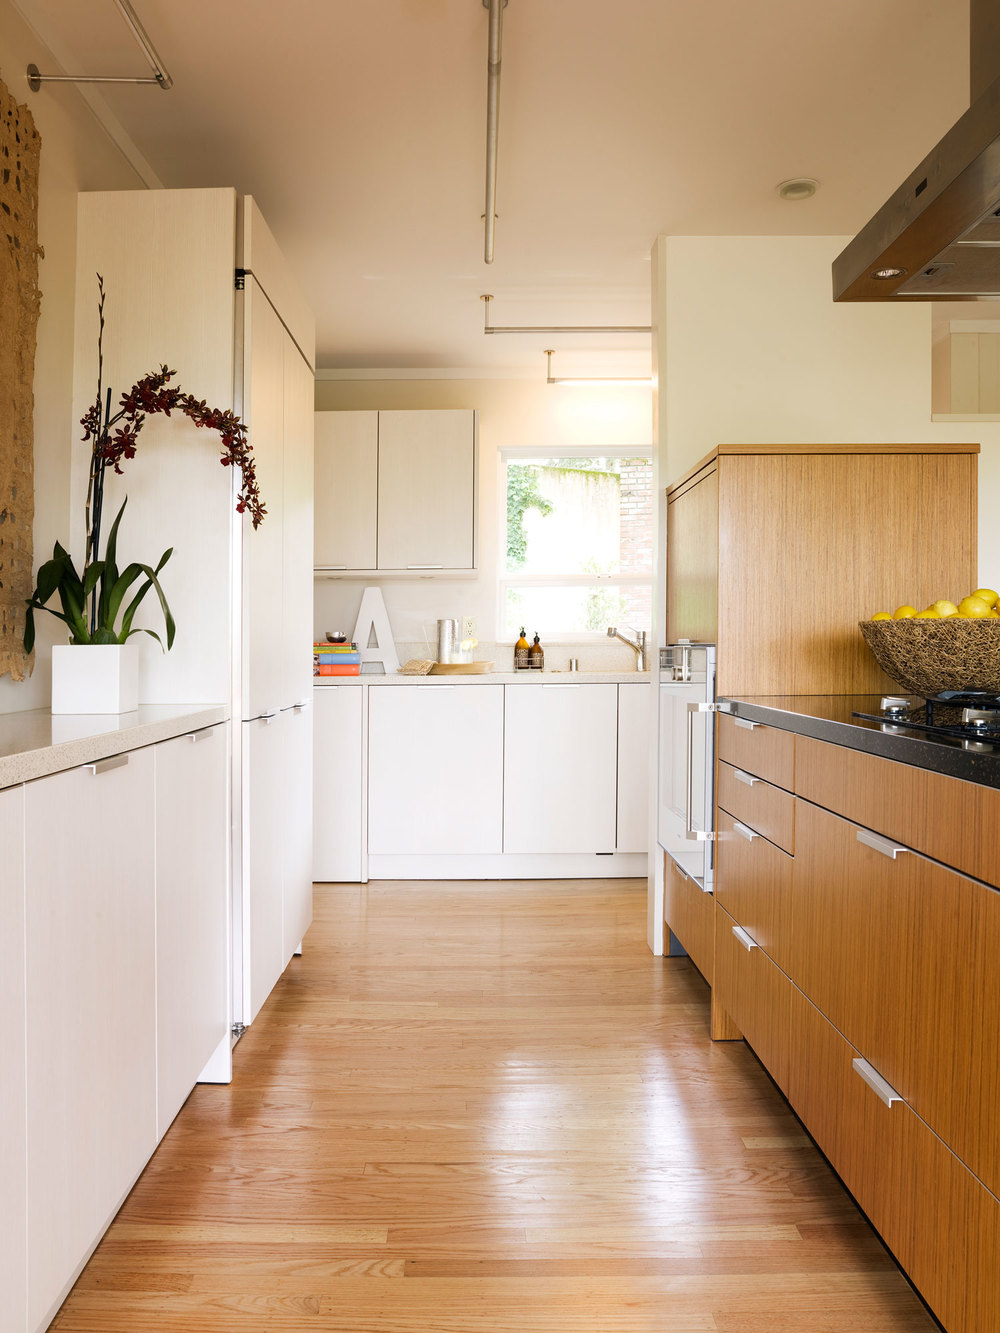 madara_WD_alper_kitchen_002.jpg